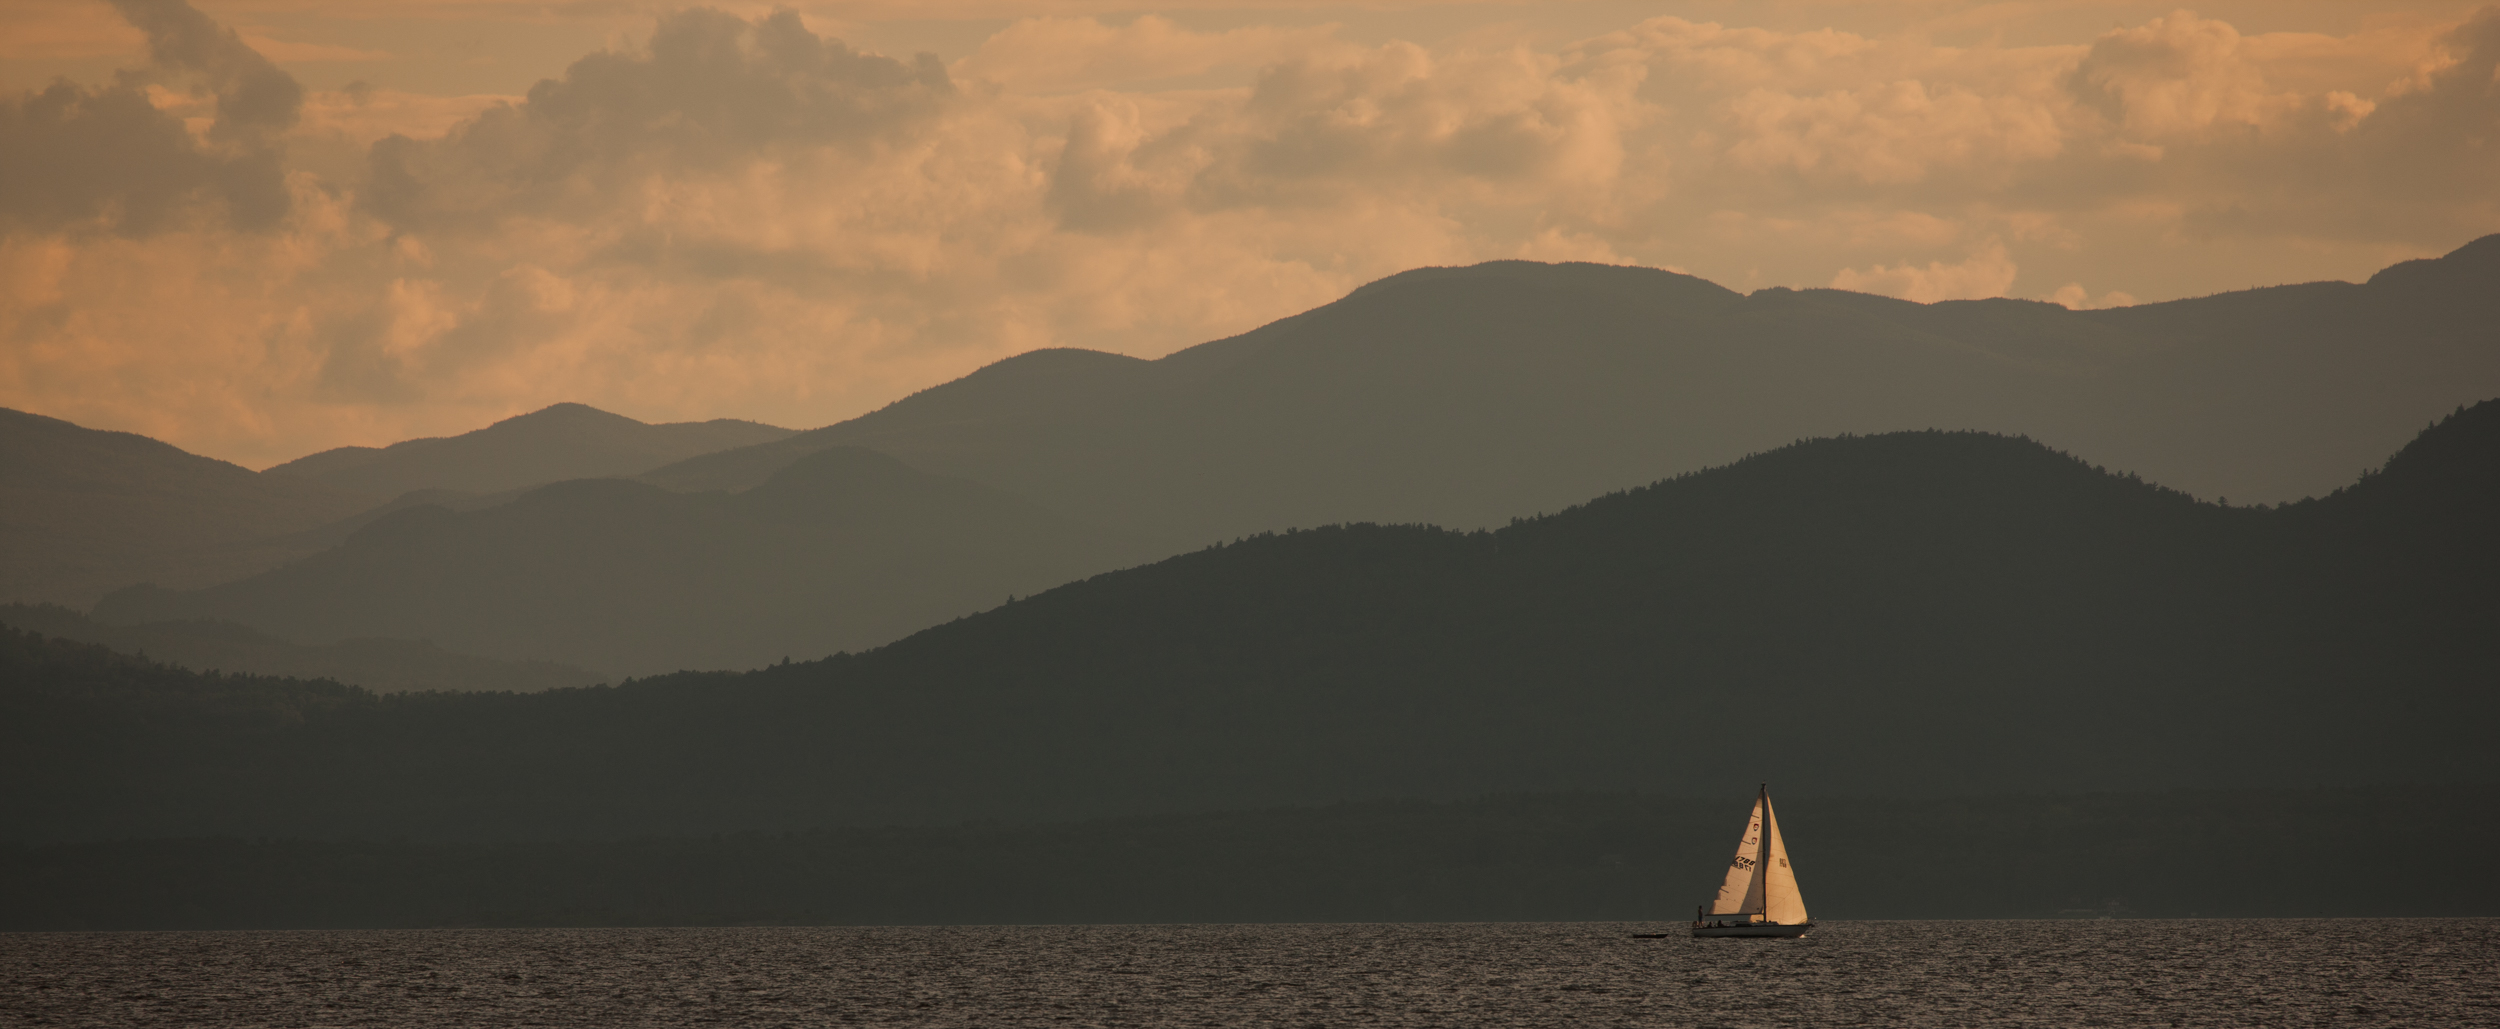 Adirondack Sunset Sail 3